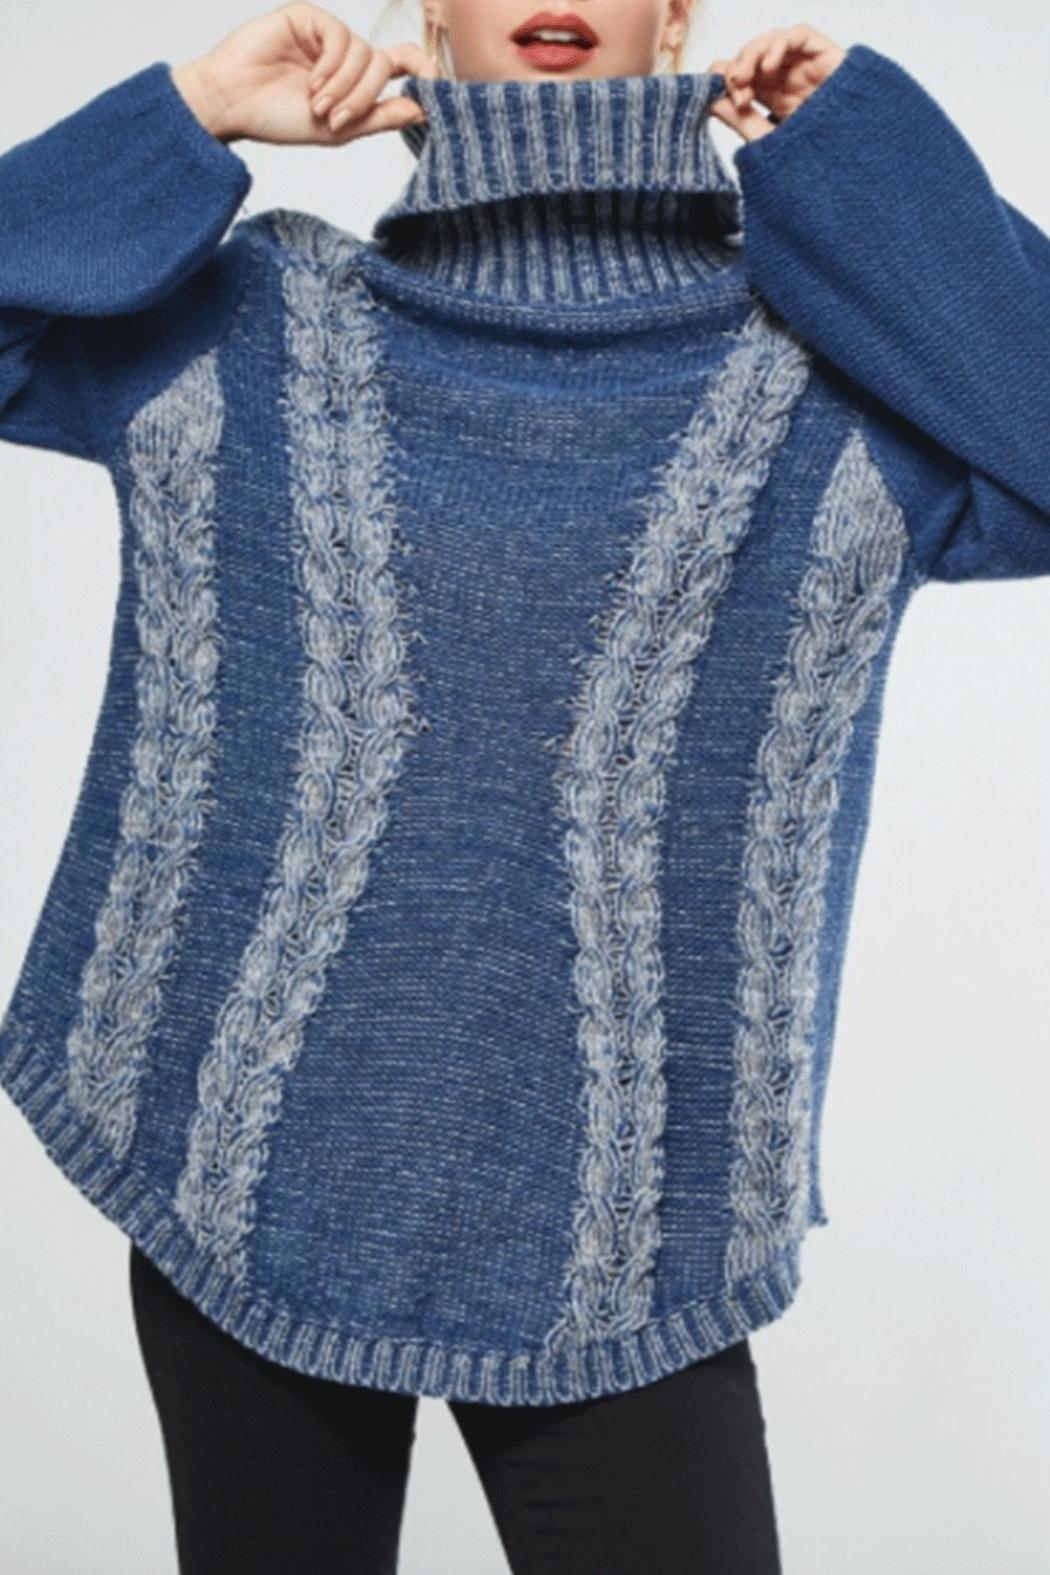 promosa Turtleneck Cableknit Sweater - Front Full Image